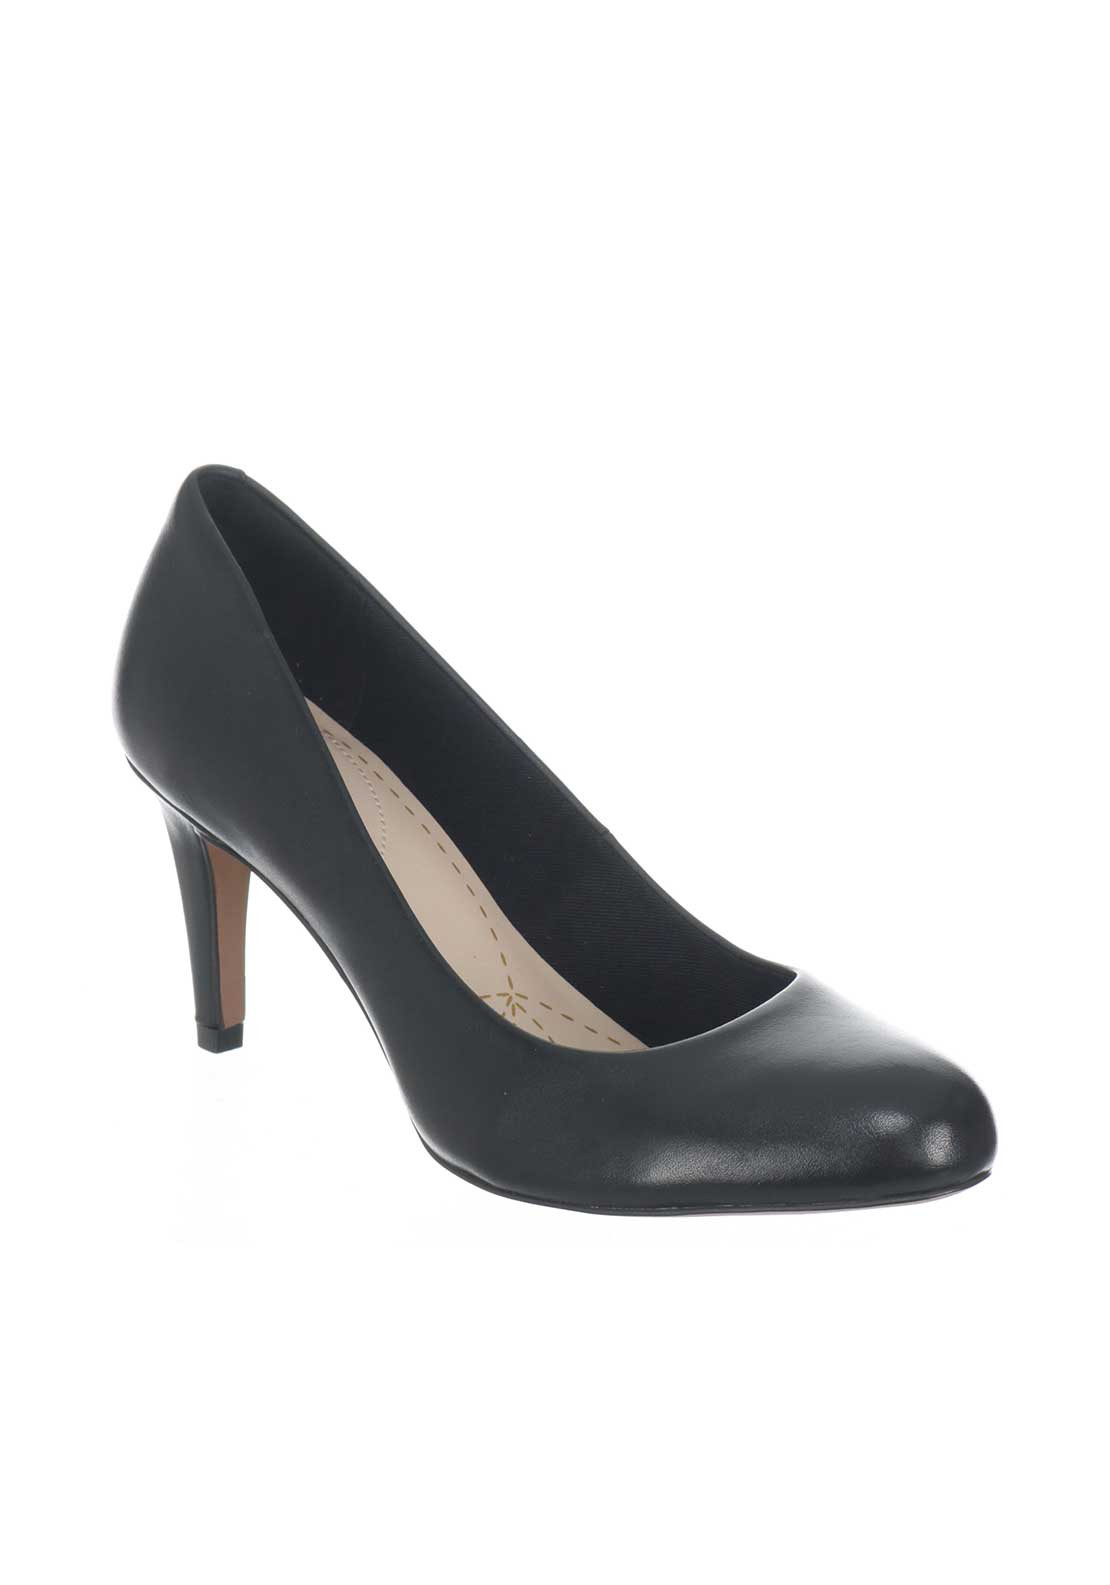 Clarks Womens Carlita Cove Court Shoes, Black